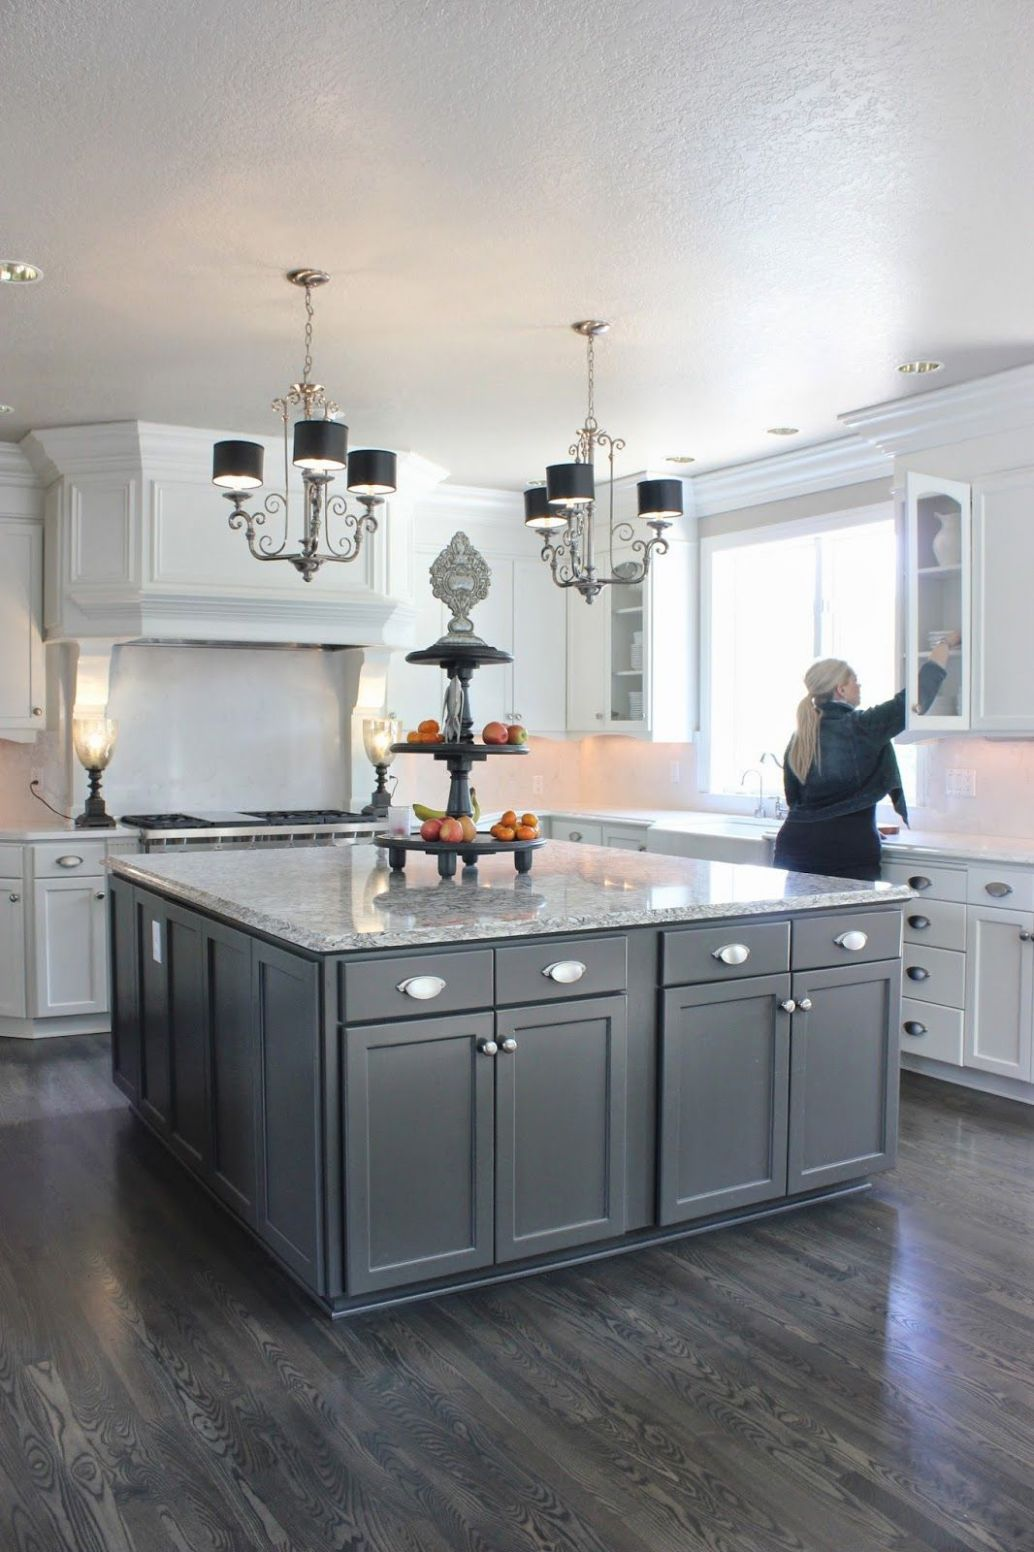 Staining hardwood floors gray (With images) | Kitchen design, Home ..